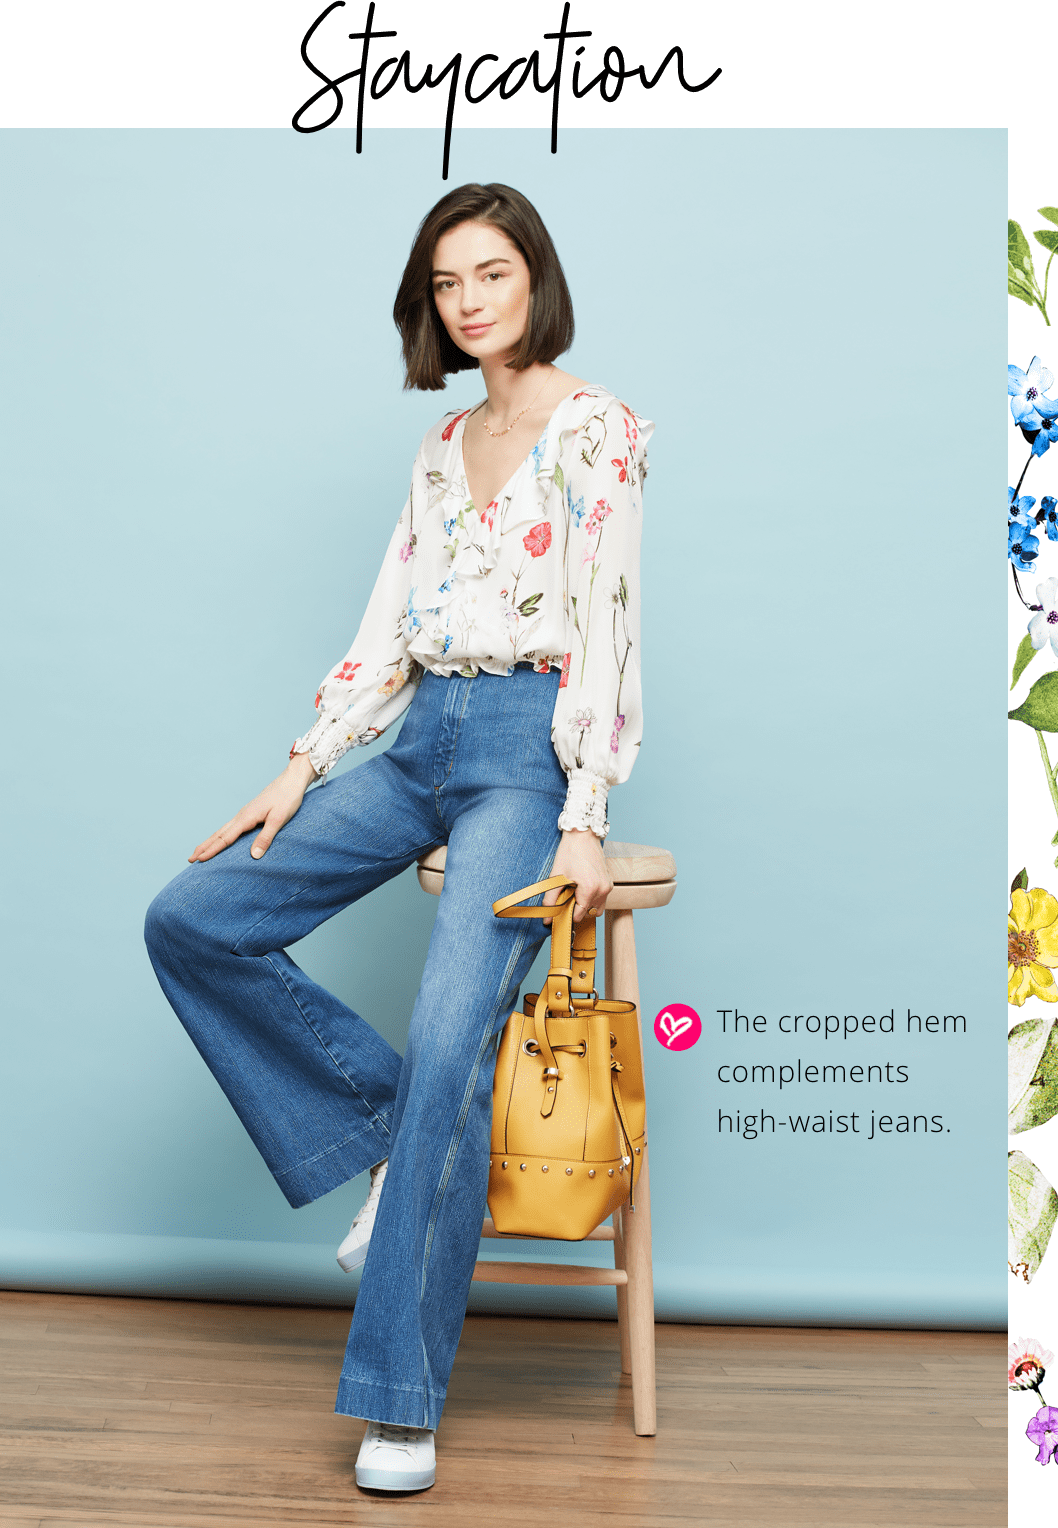 Model in Quincy Floral Blouse and jeans